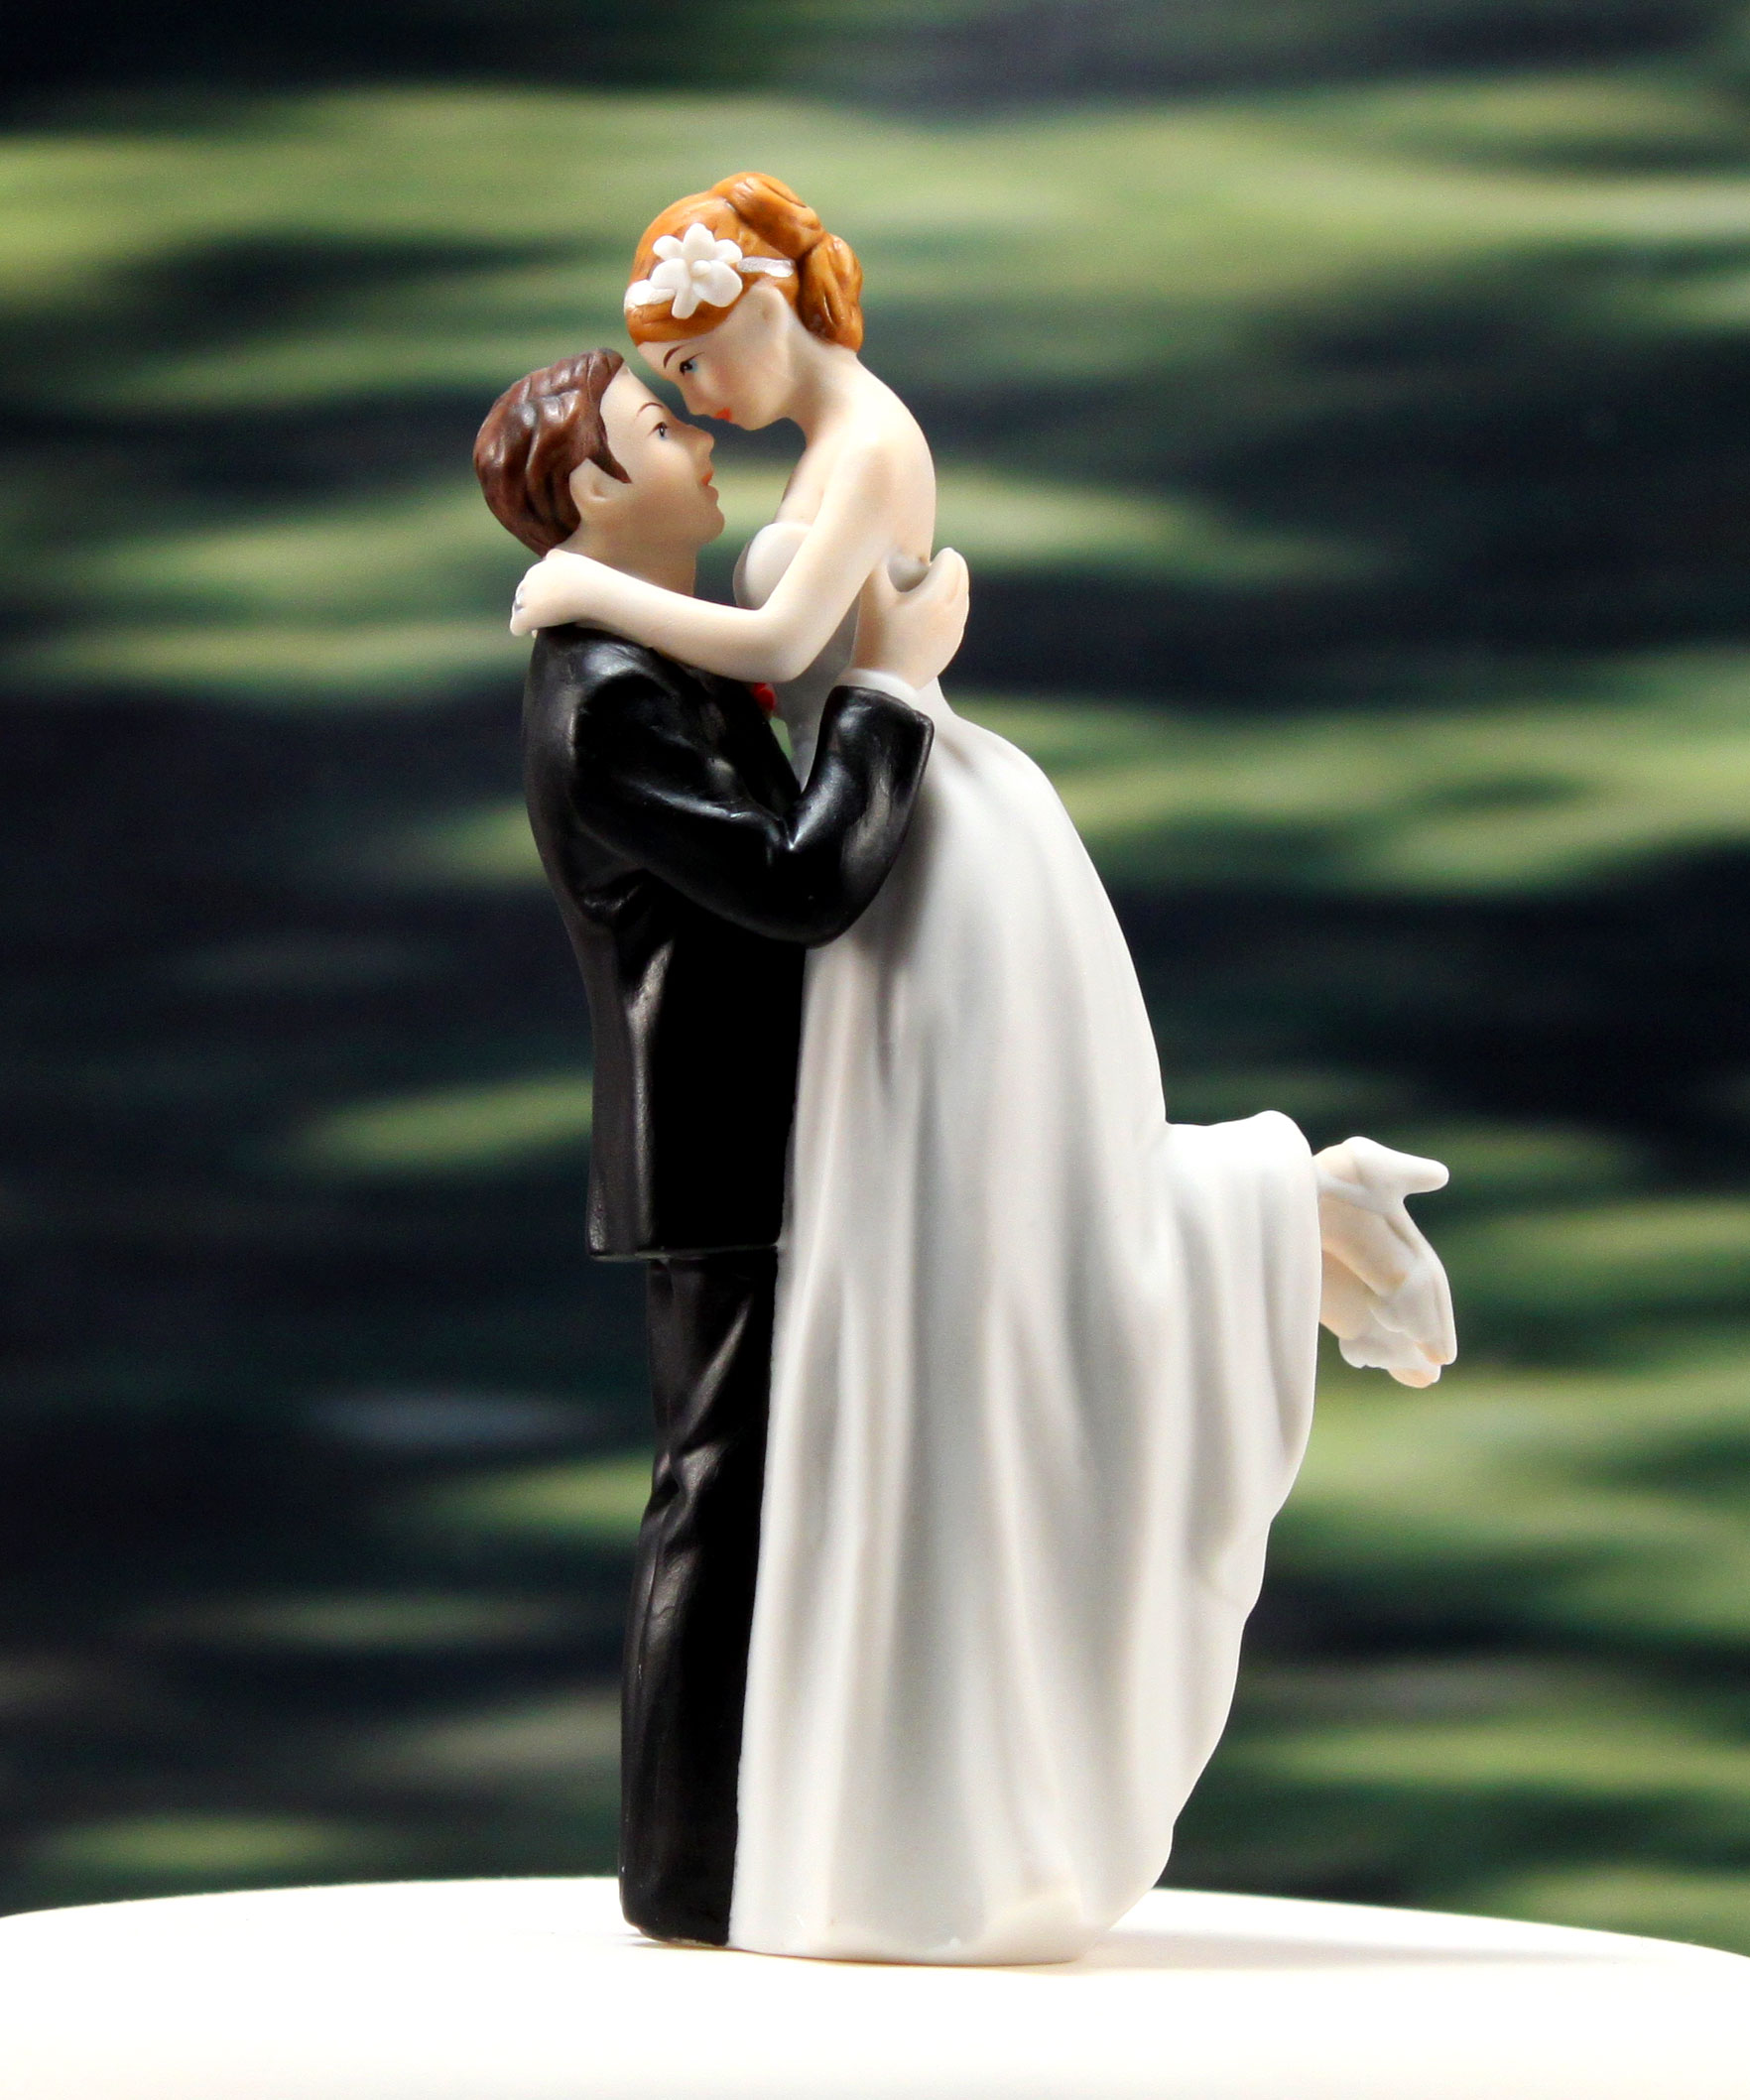 Bride Wedding Cake Topper: True Romance Bride And Groom Wedding Cake Topper Figurine